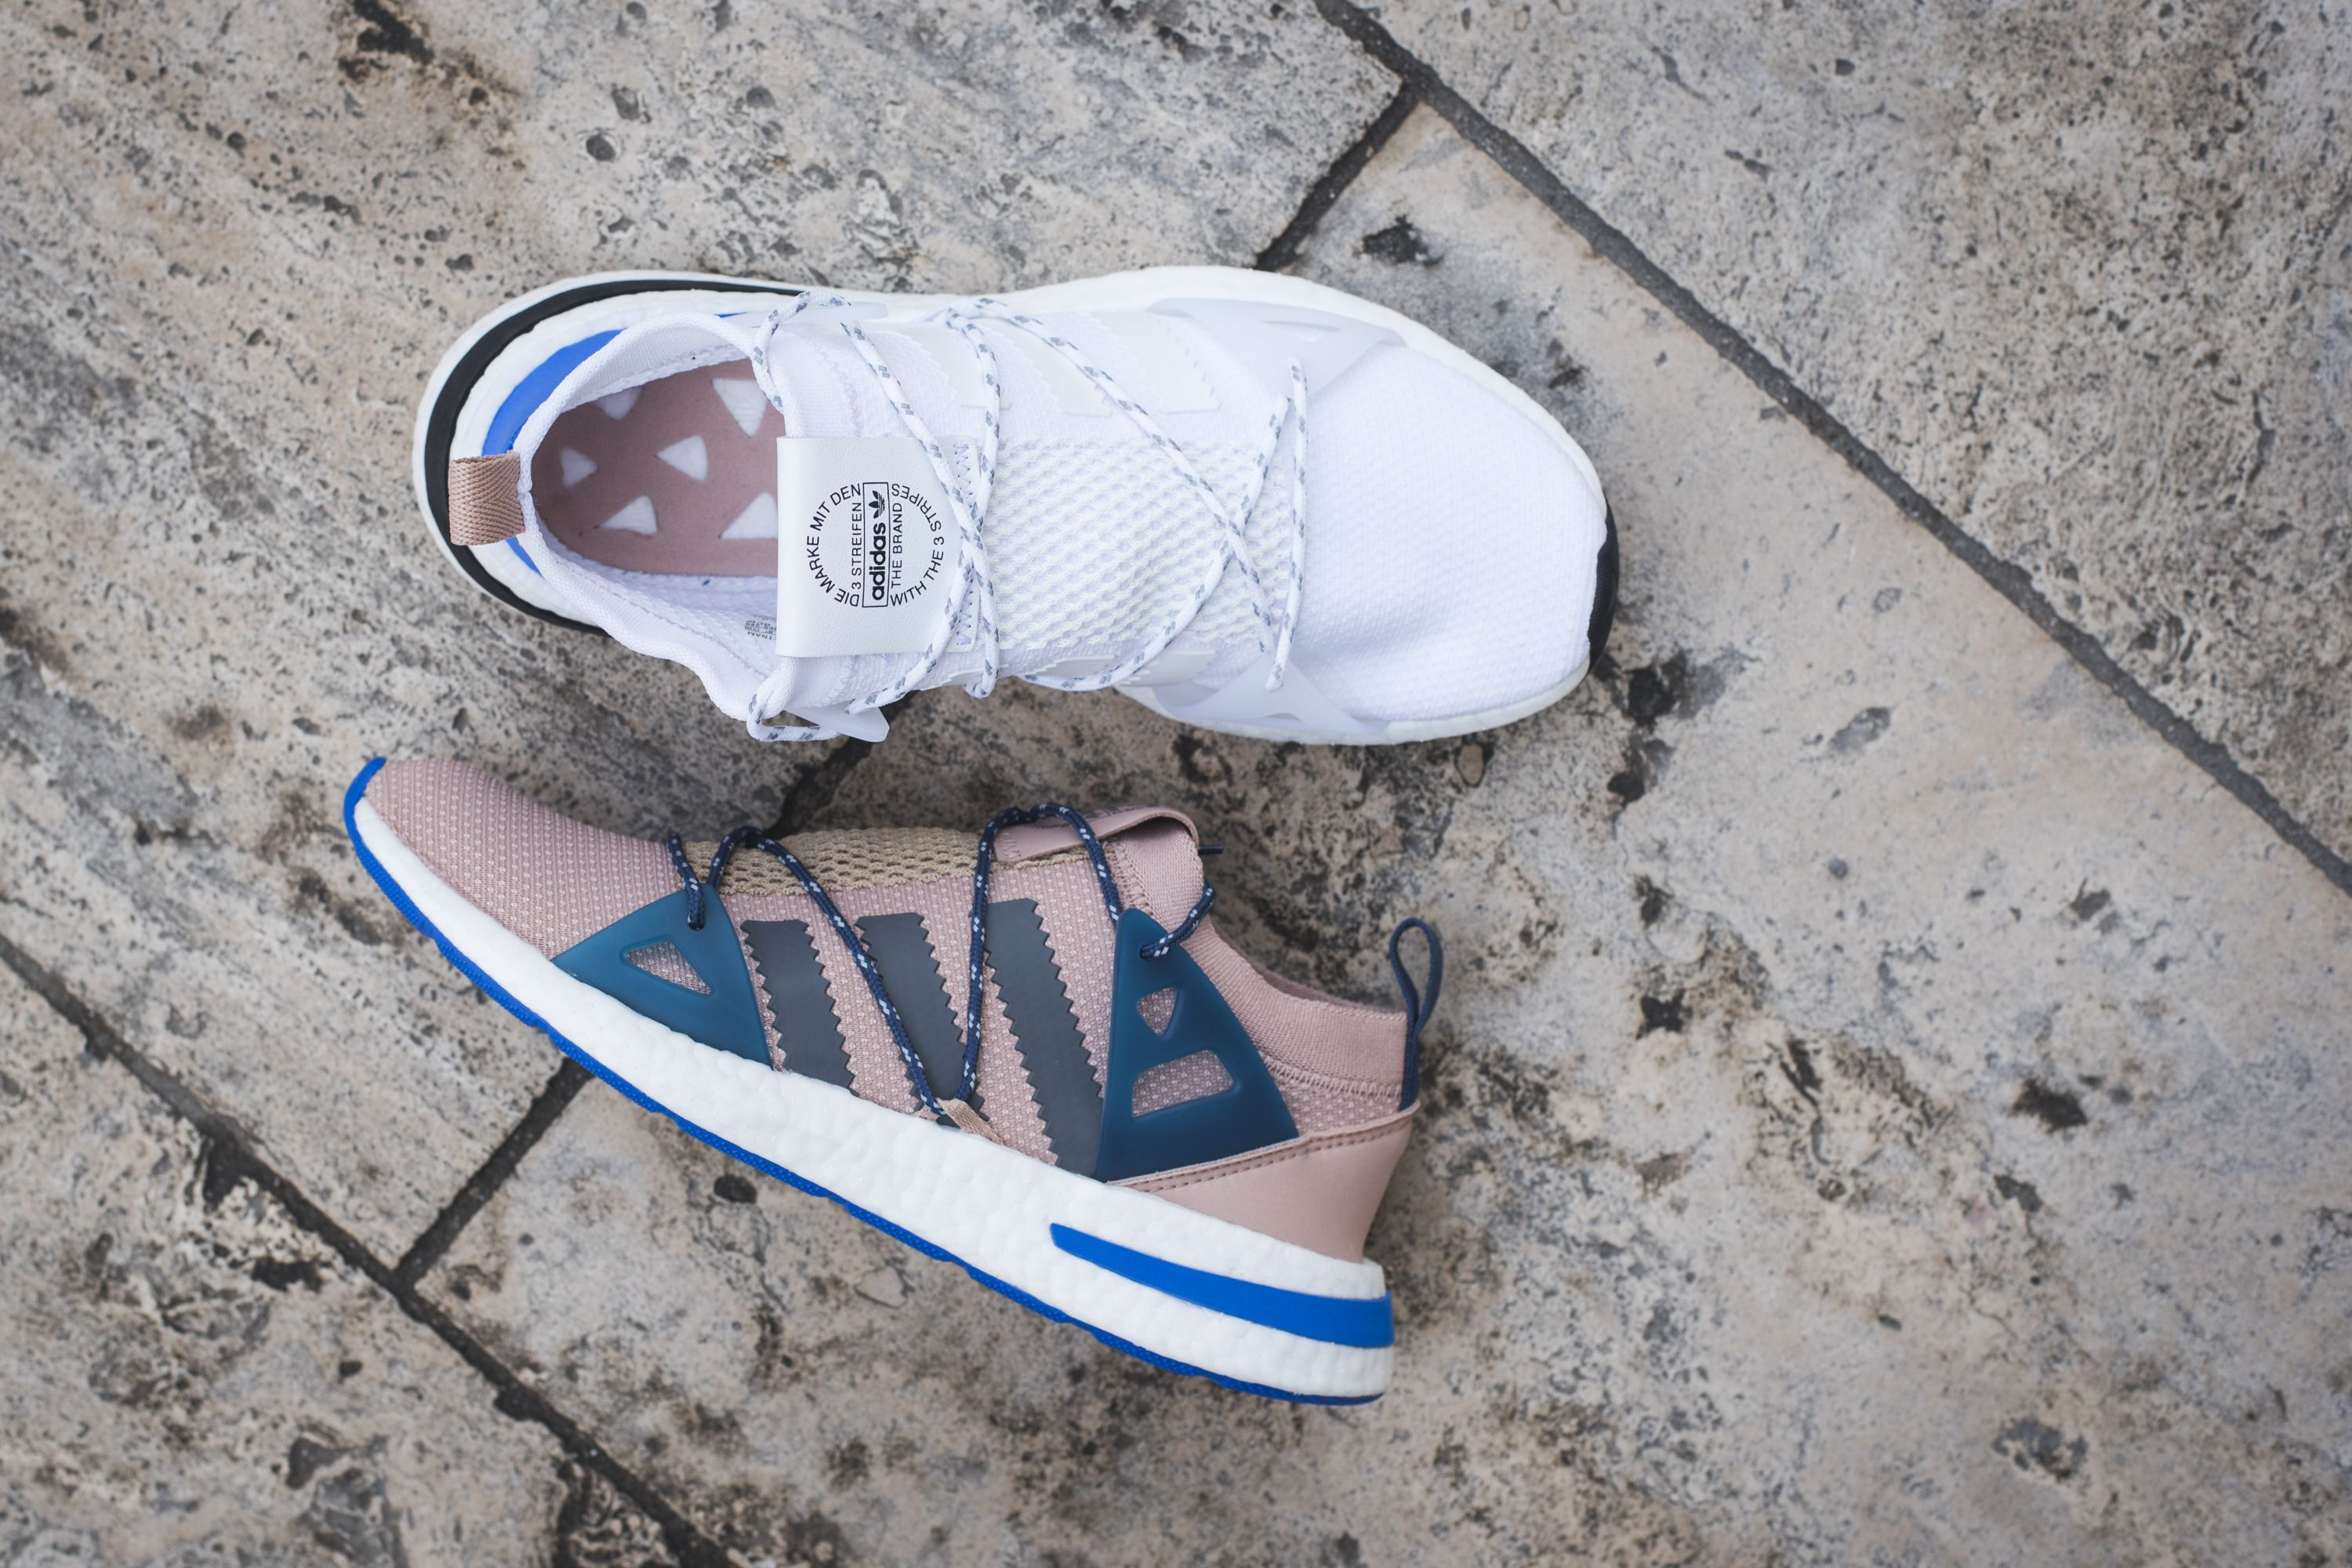 new style d5af1 87543 Light And Comfy Sneaker Just For Her. adidas Arkyn Is Ultimate summer  silhouette With Boost